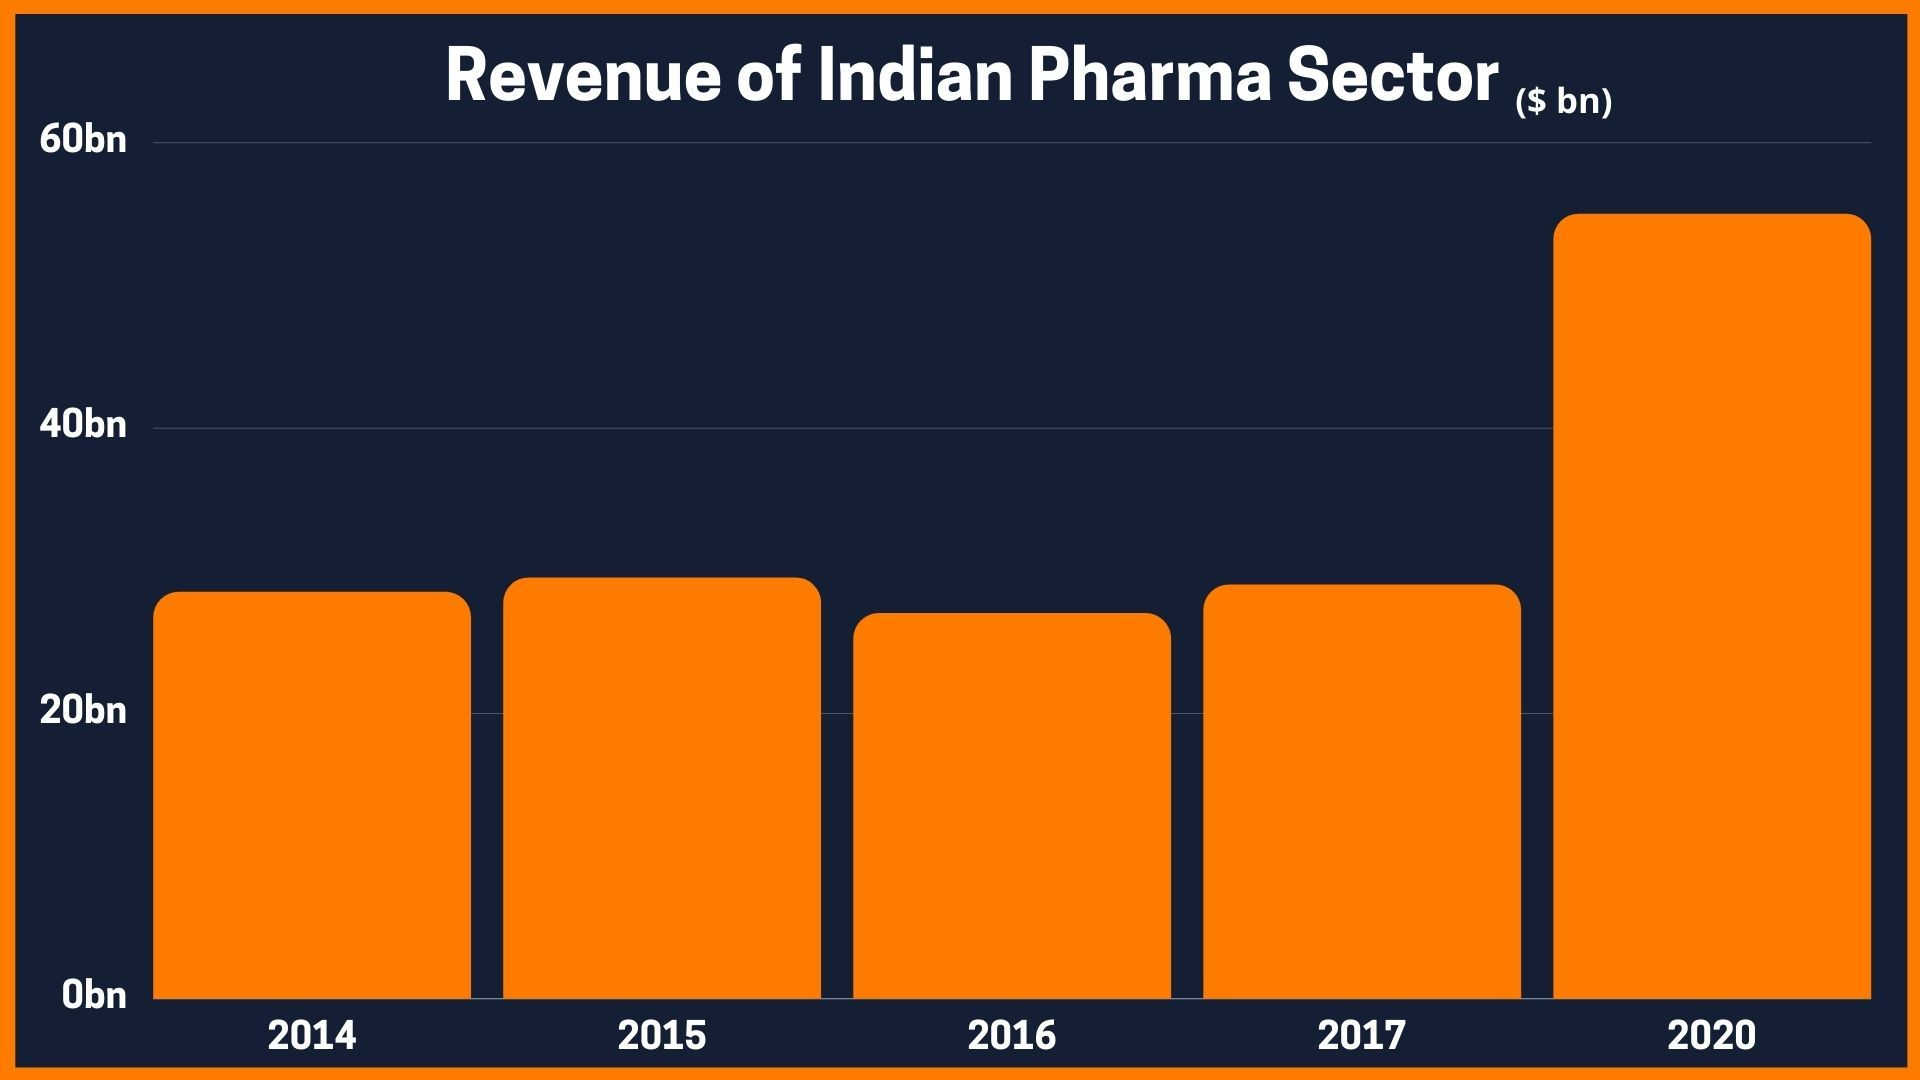 Revenue of Indian Pharma Sector